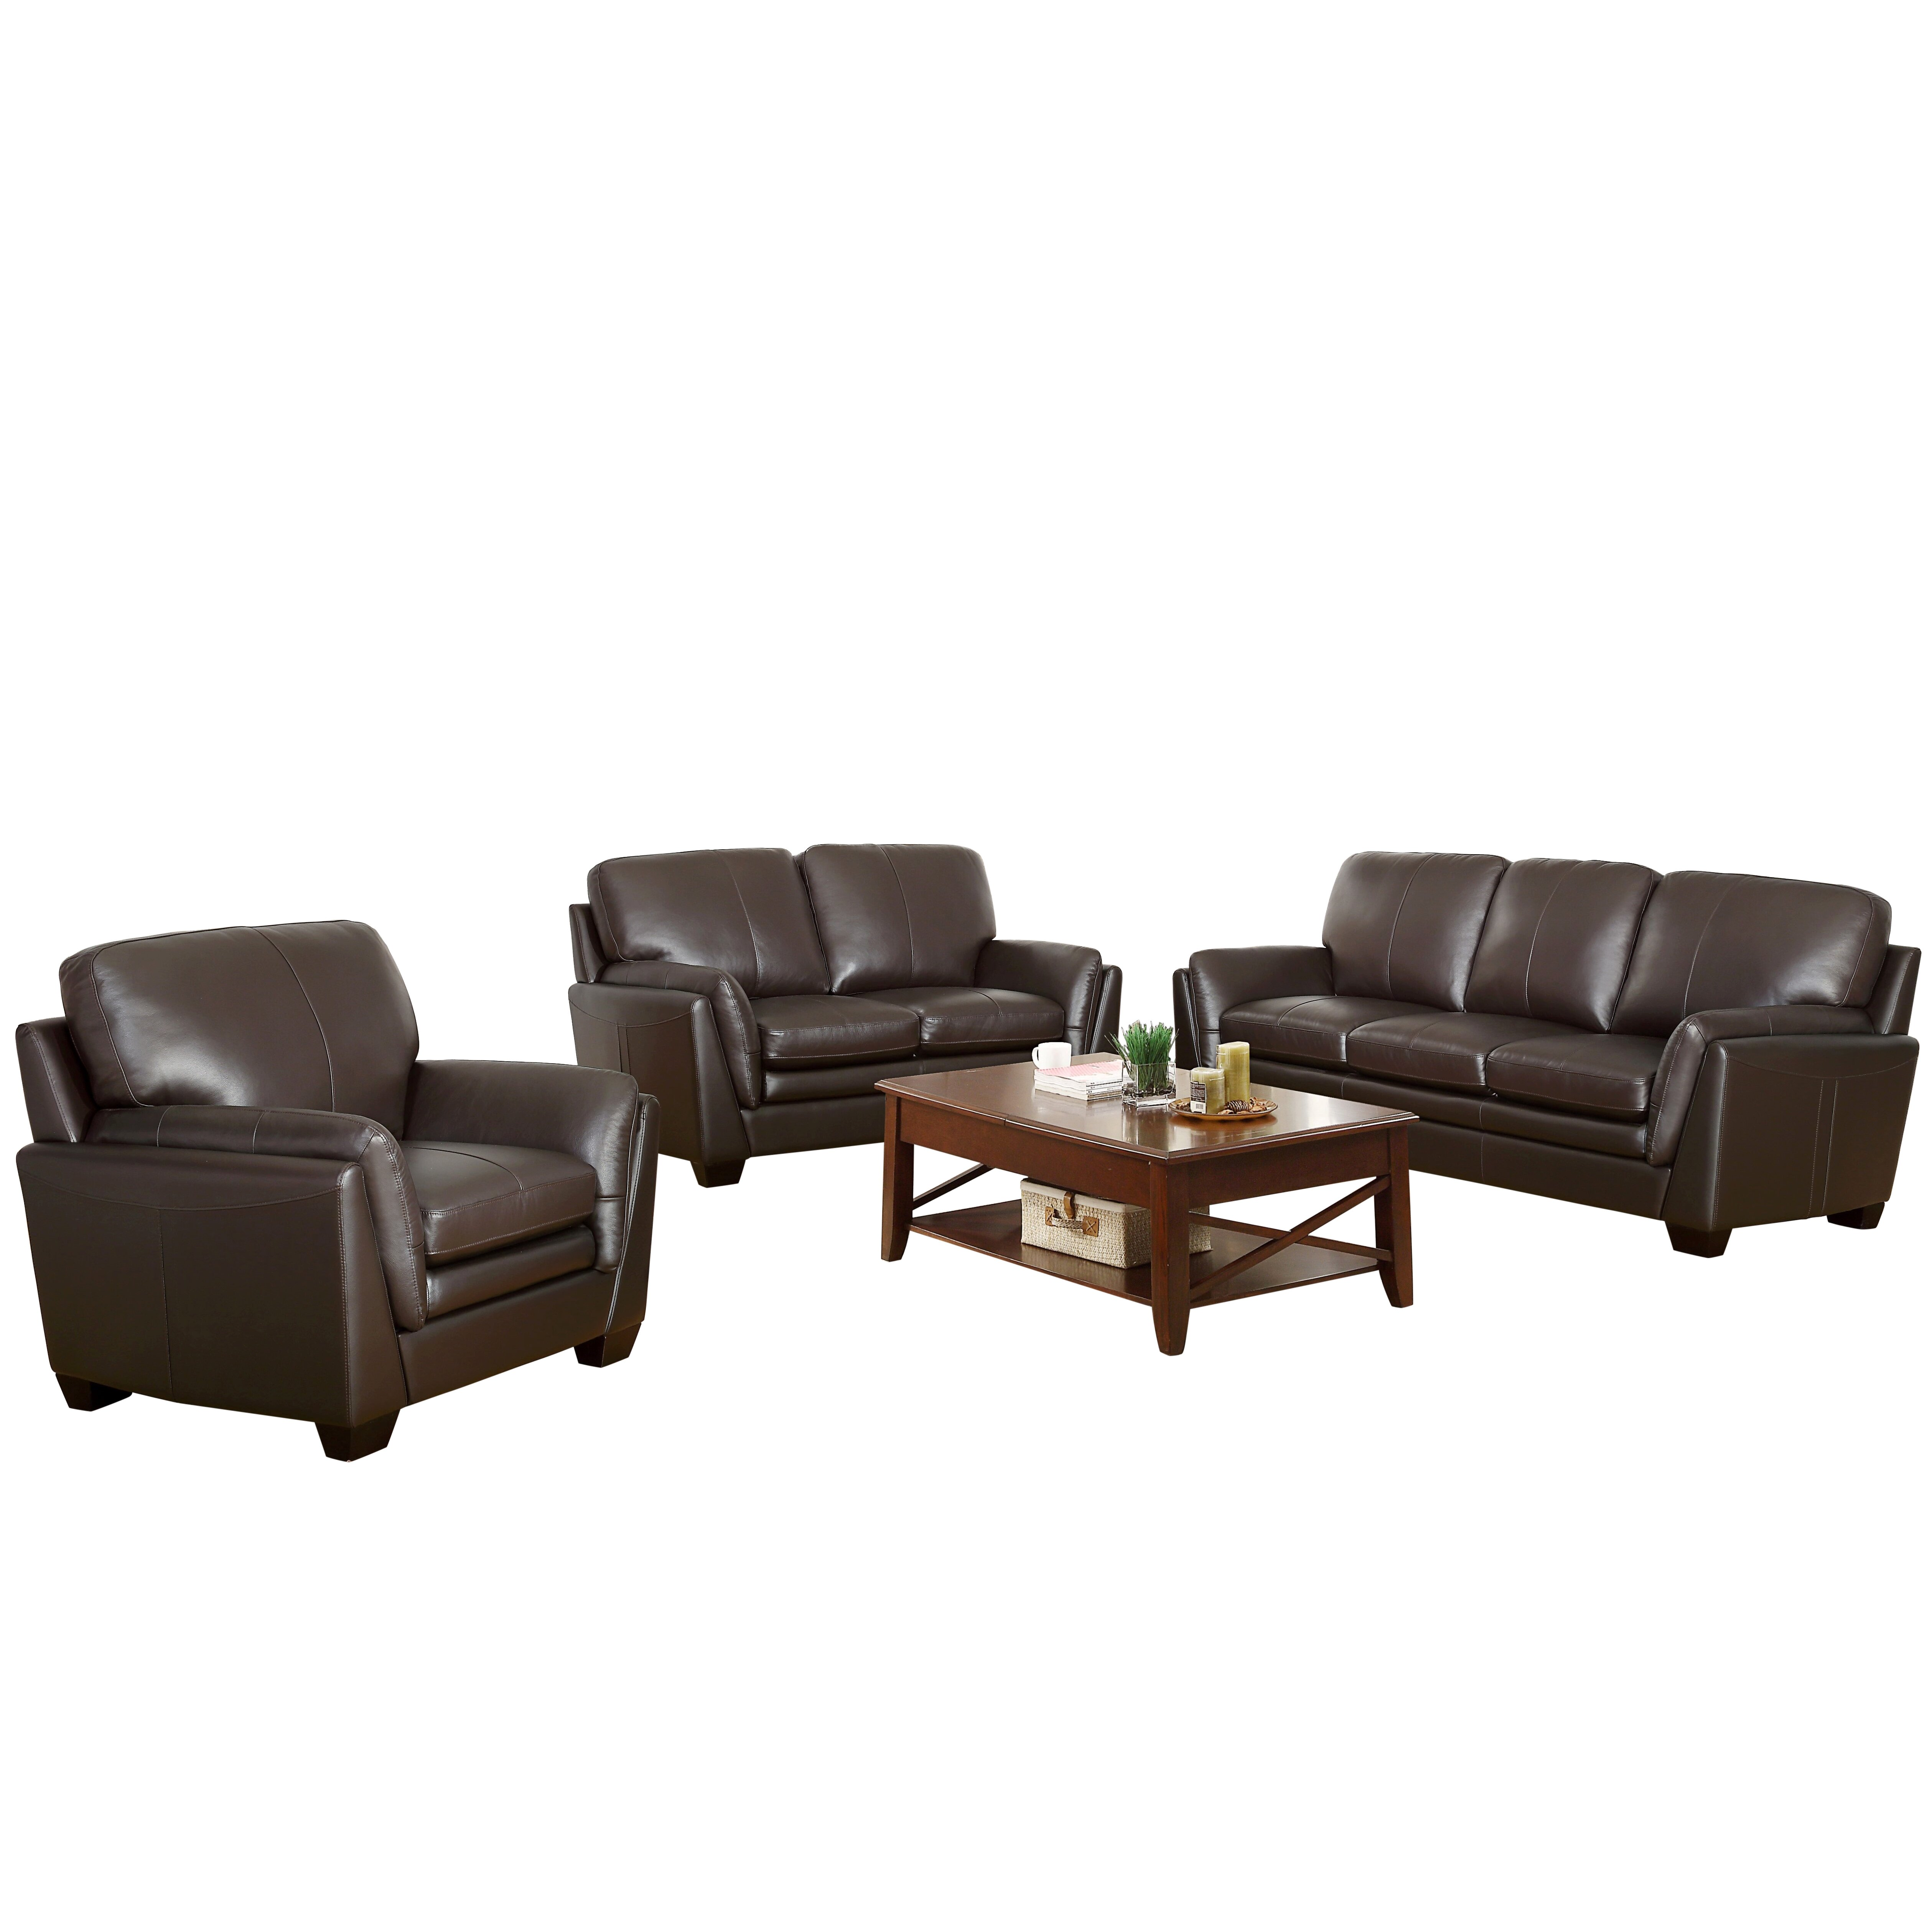 Darby home co whitstran top grain leather sofa and for World best sofa set